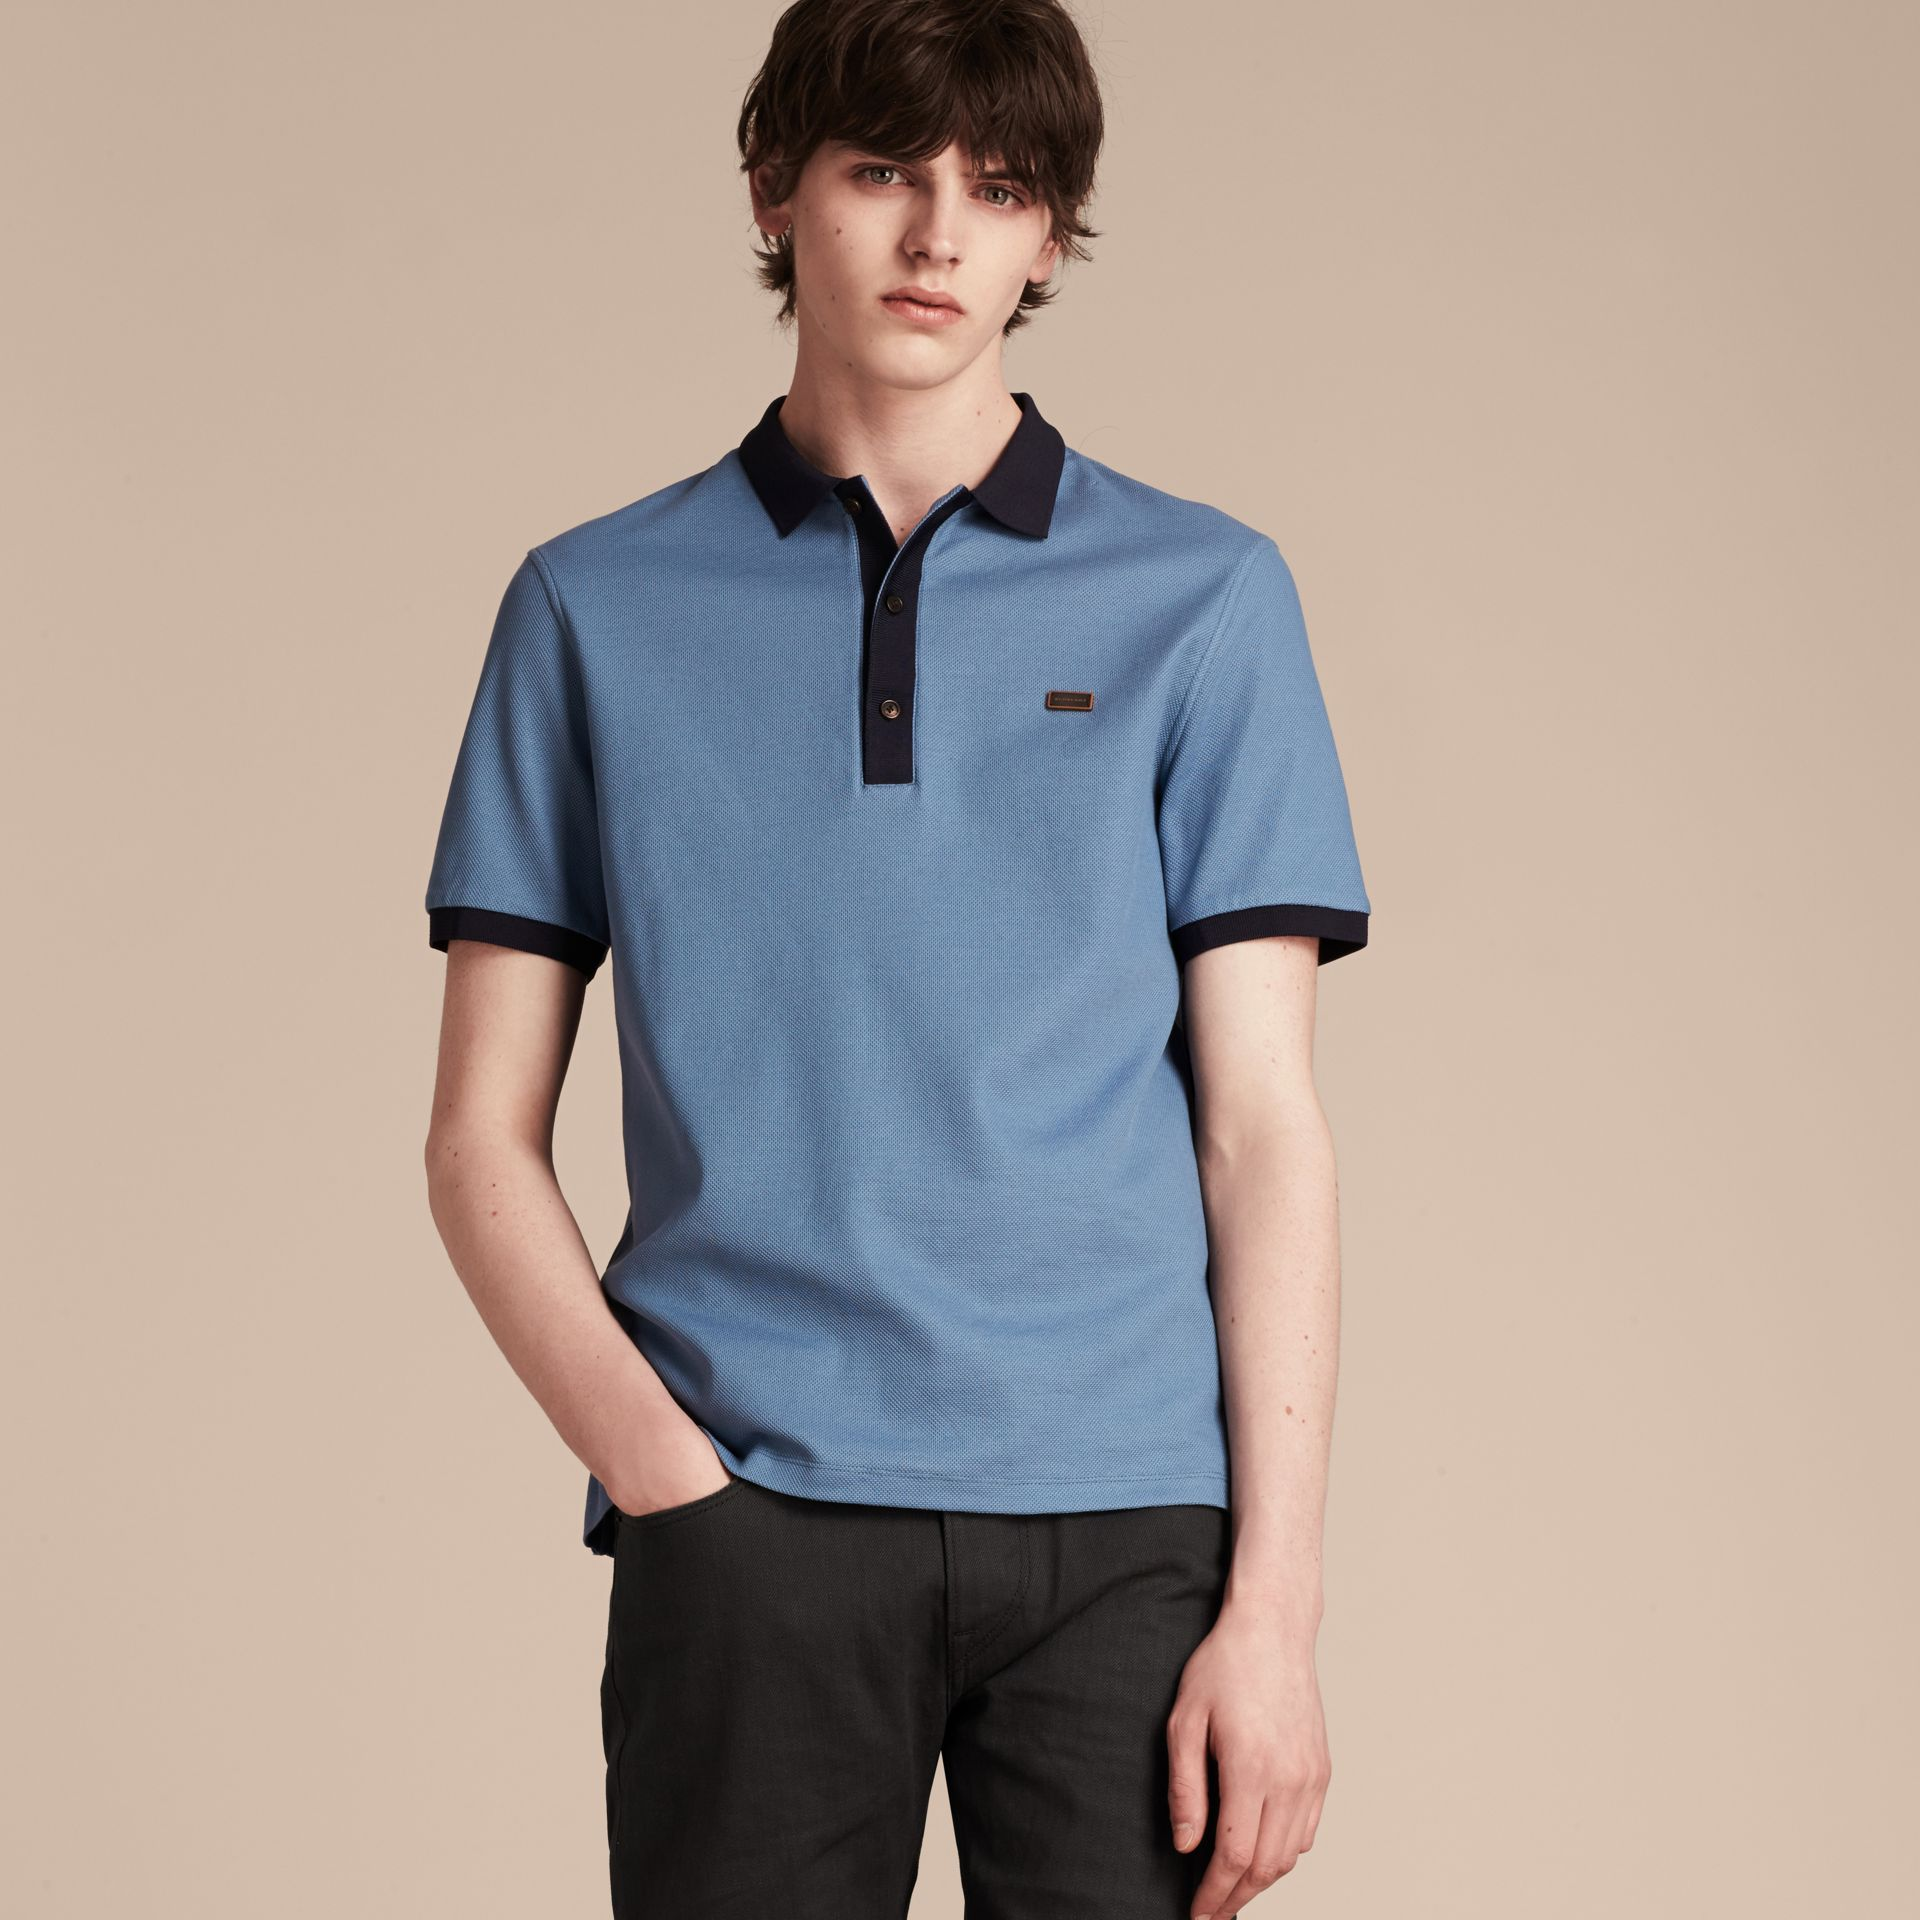 Pale cornflower blue/bright navy Mercerised Cotton Piqué Polo Shirt Pale Cornflower Blue/bright Navy - gallery image 4